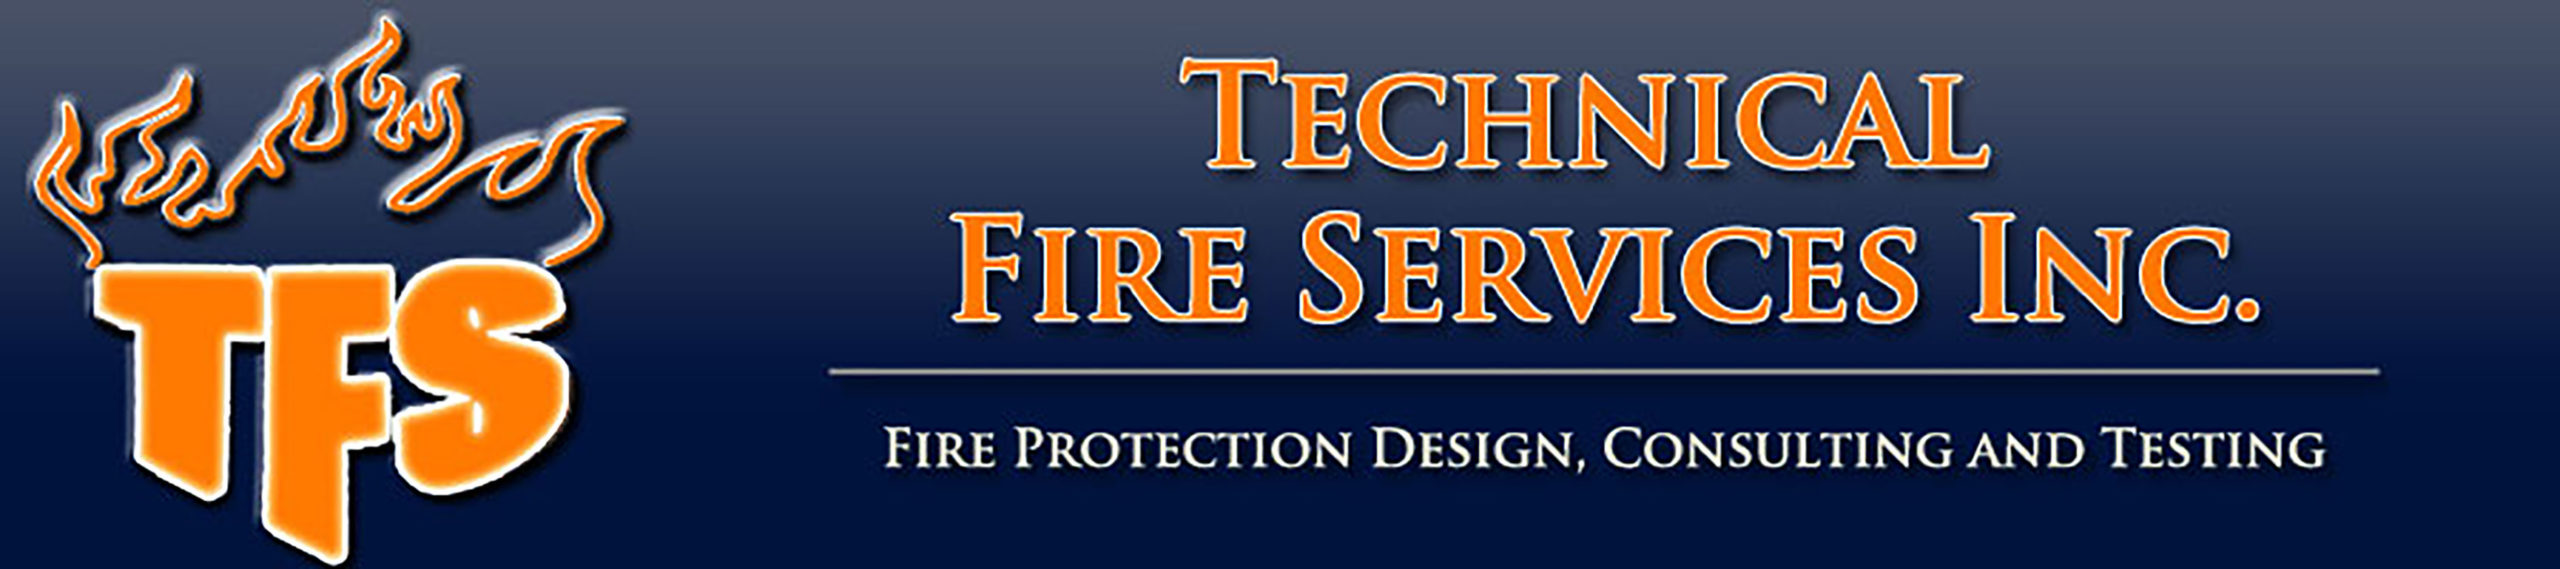 Technical Fire Services